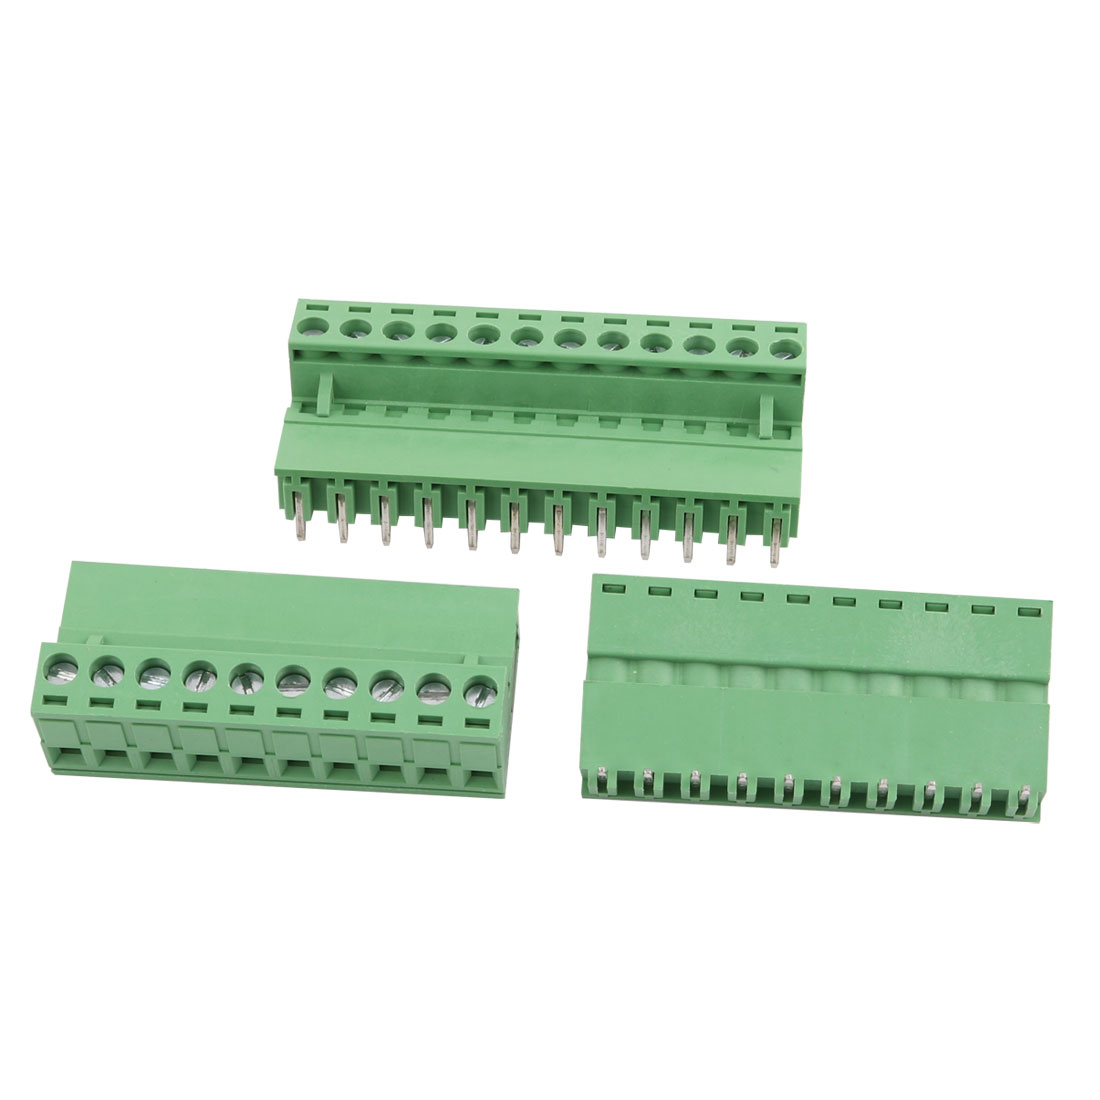 3 Sets 300V 10A 5.08mm Pitch 12P Male Female PCB Screw Terminal Block Connector